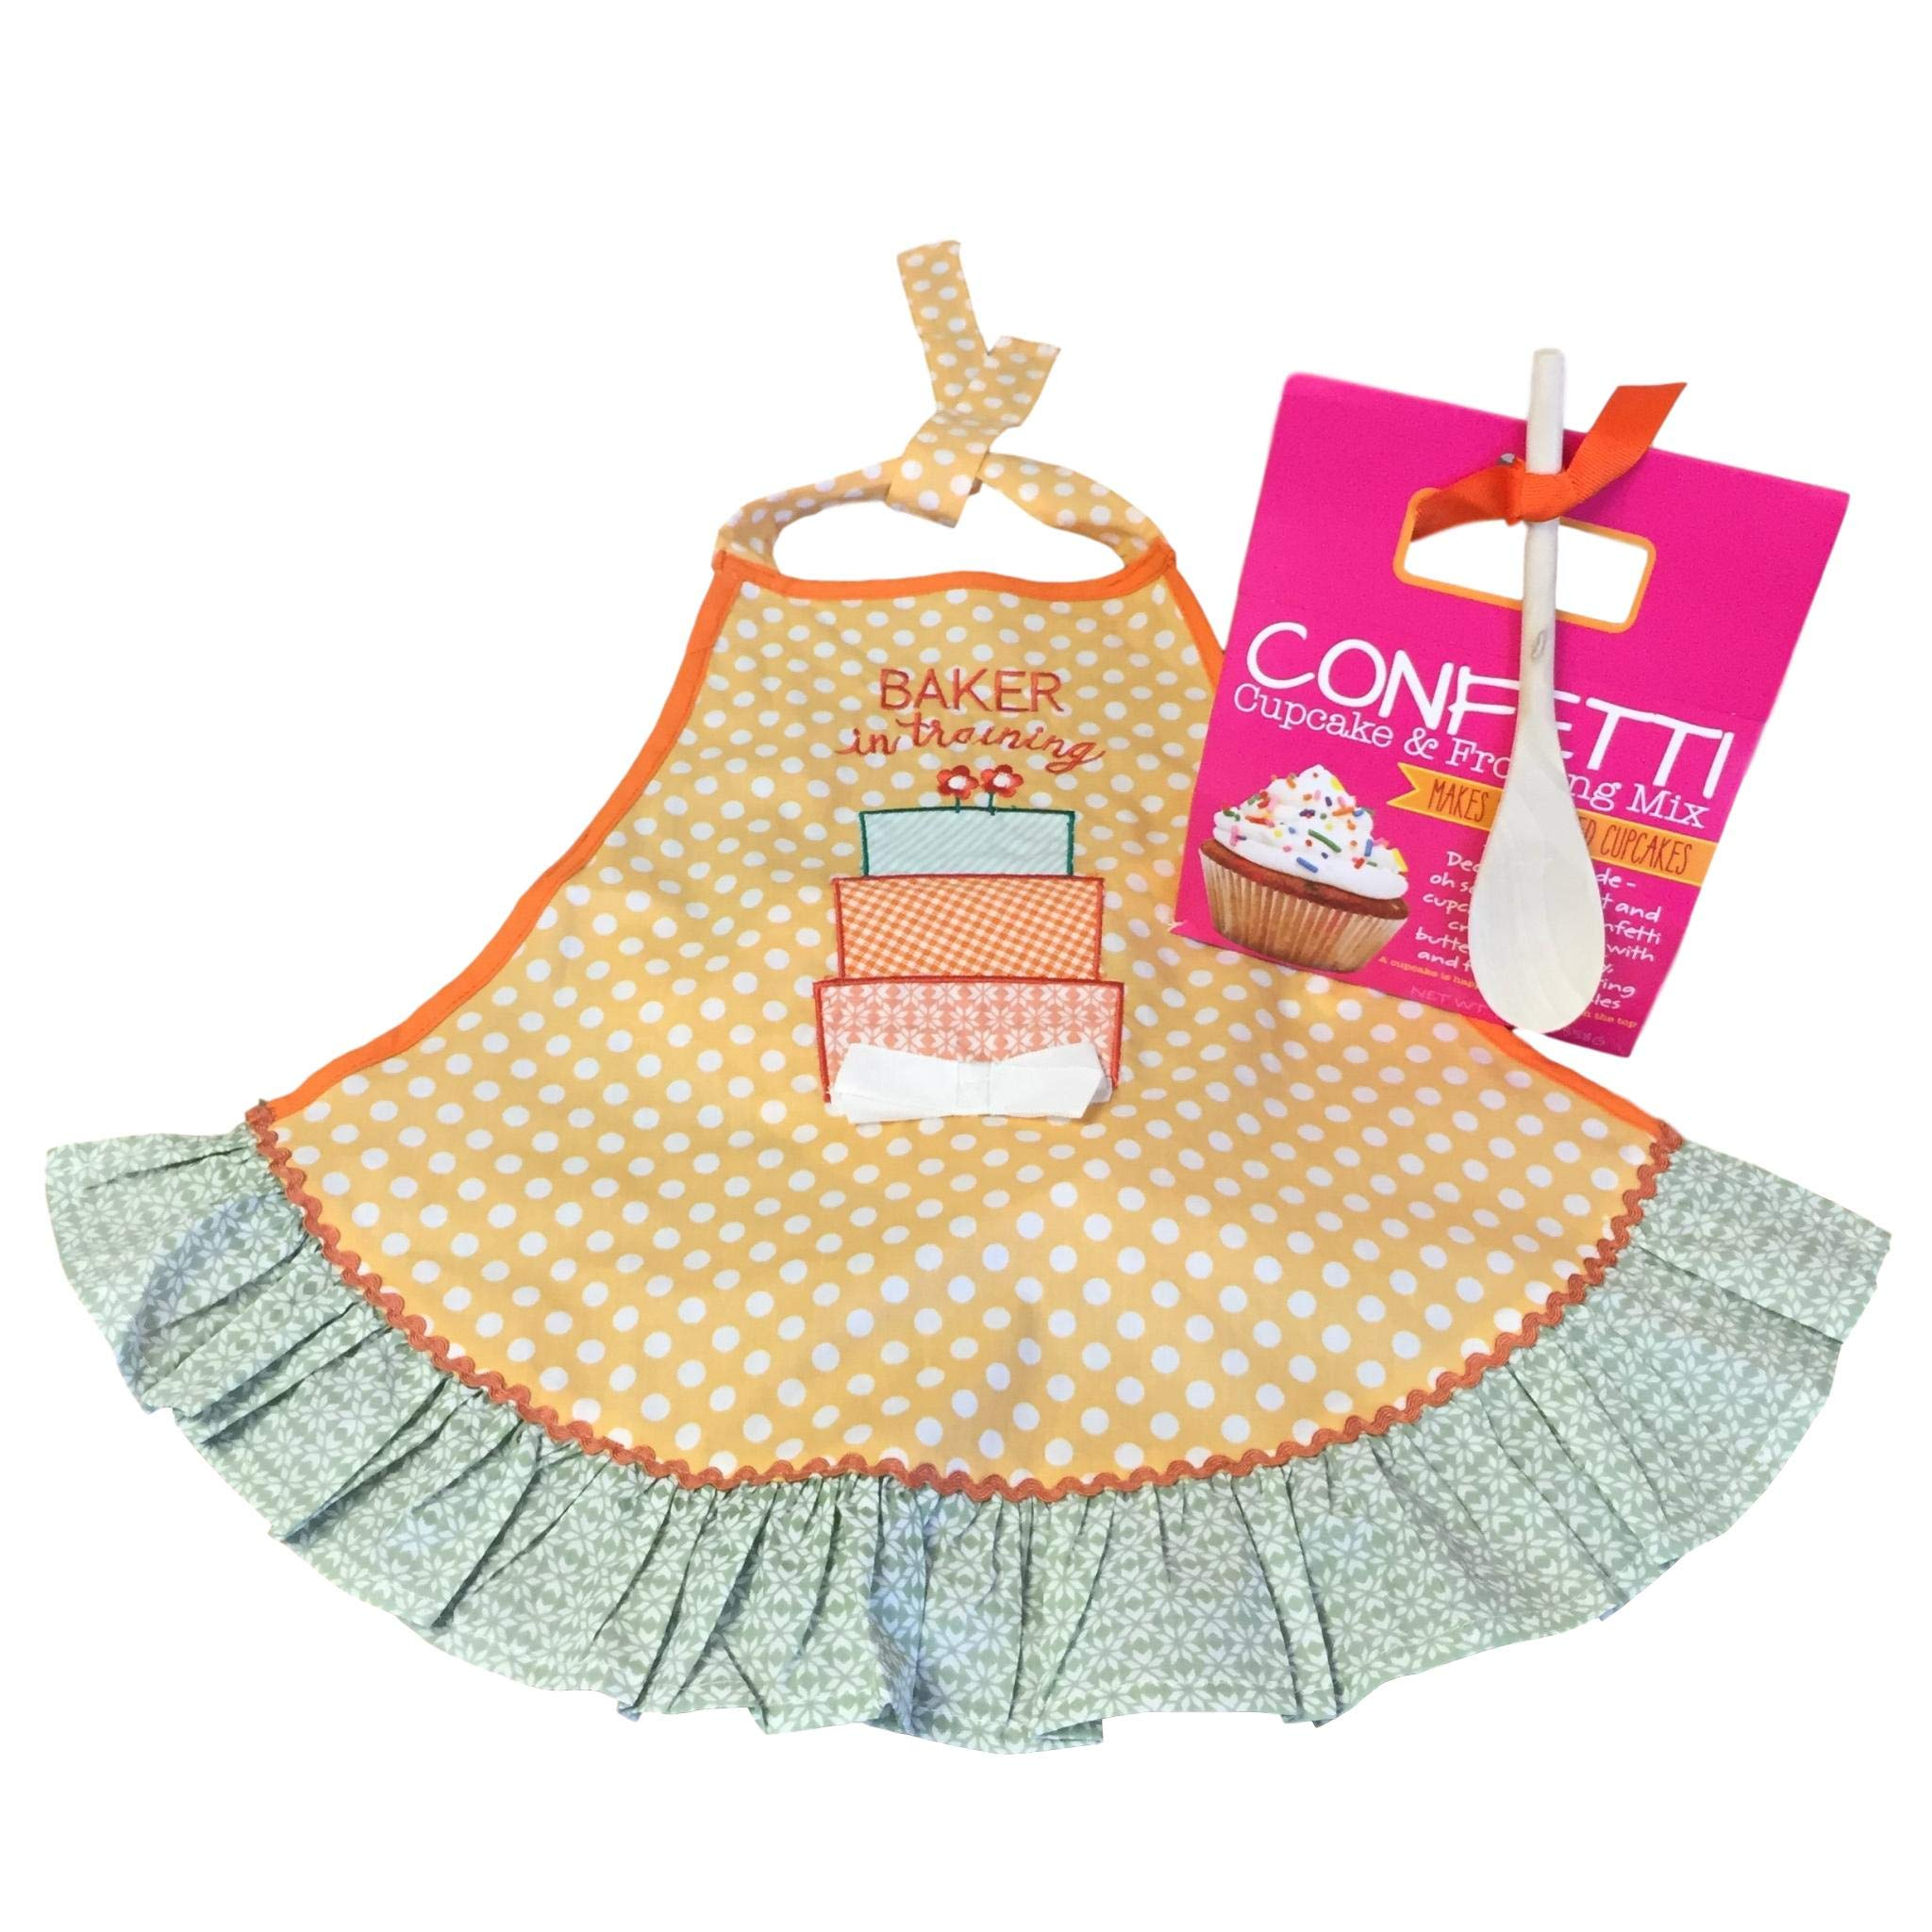 Baking Bundle with Girl's 'Baker in Training' Apron and Confetti Cupcake & Frosting Kit